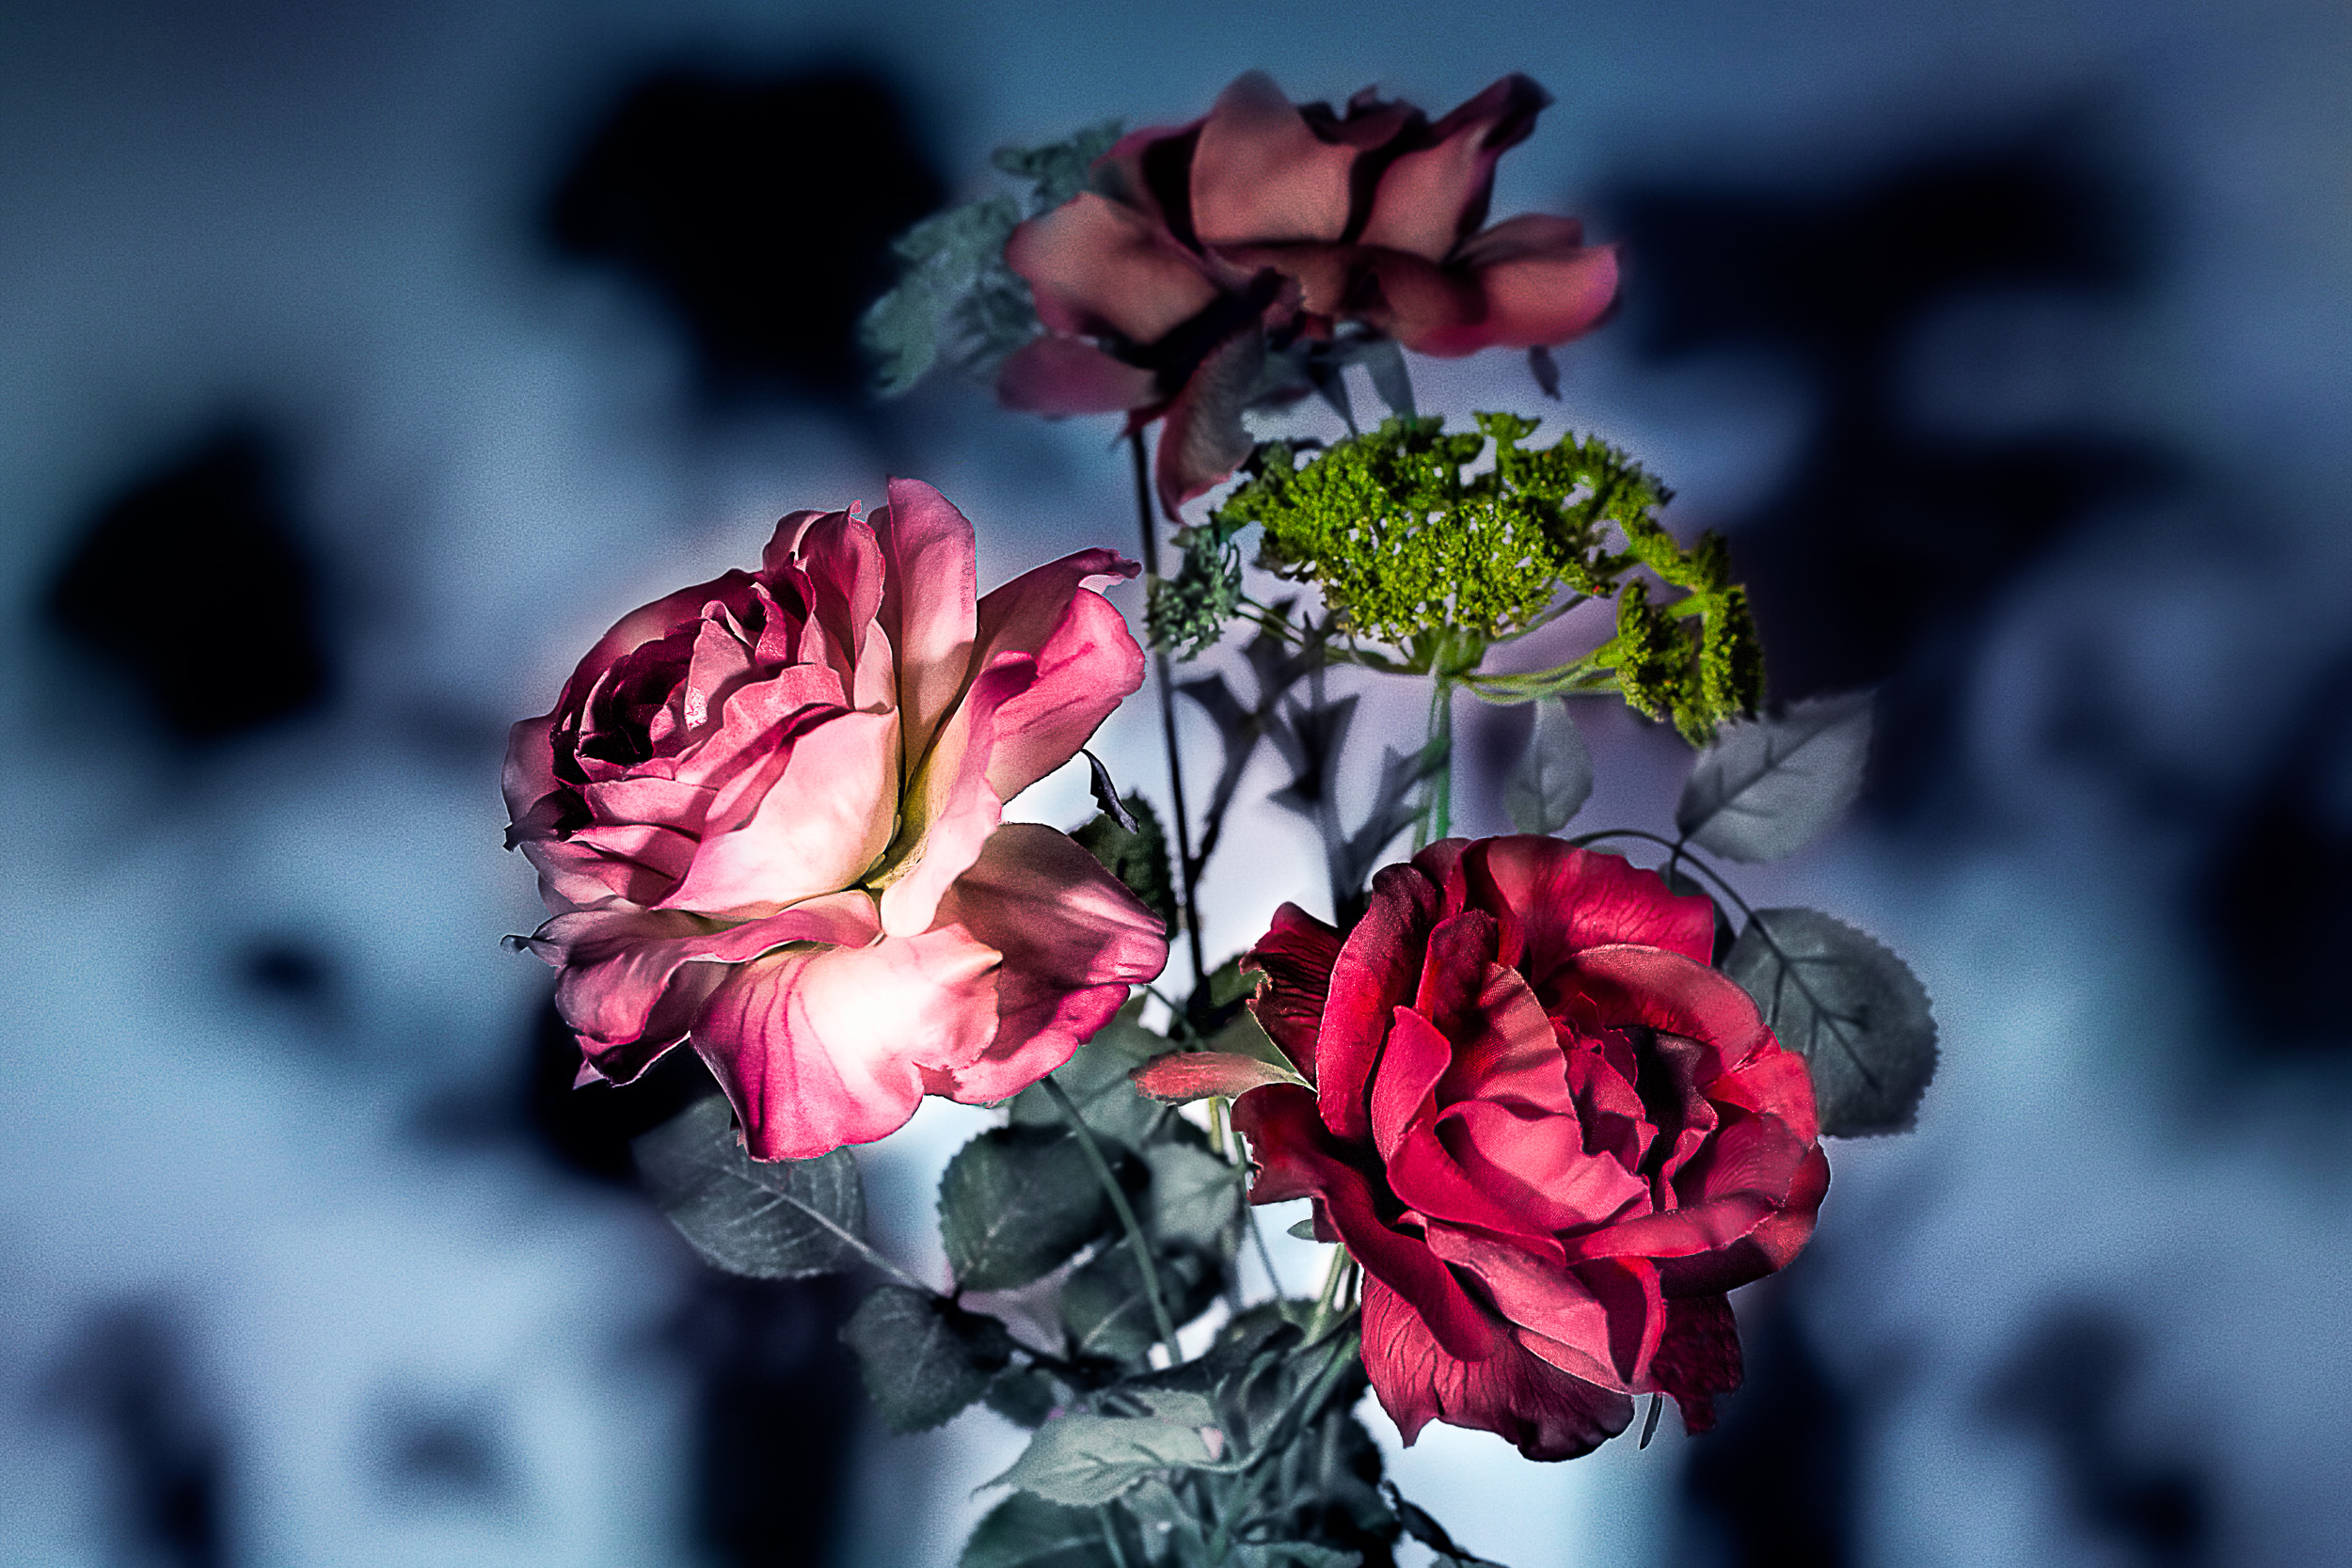 The Flowers In The Shadows